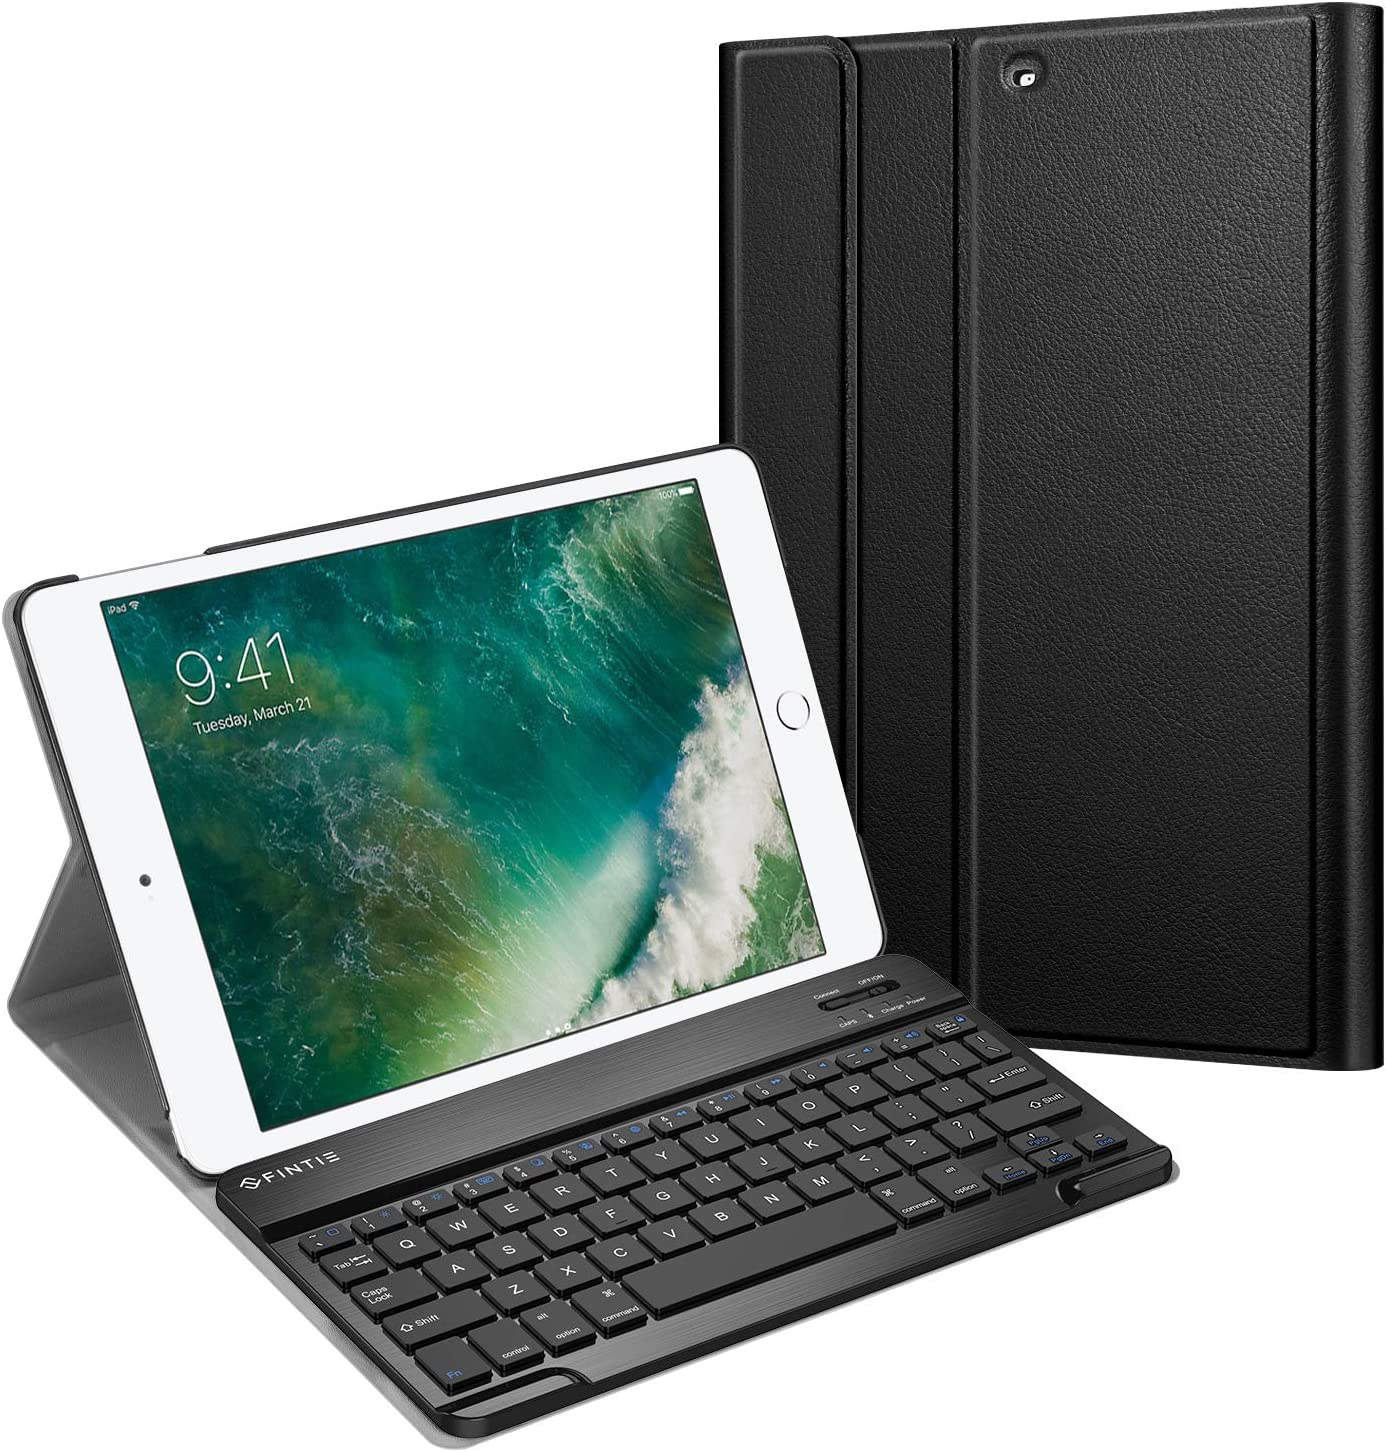 Fintie Keyboard Case for iPad 9.7 2018/2017 / iPad Air 2 / iPad Air - Slim Shell Stand Cover w/Magnetically Detachable Wireless Bluetooth Keyboard for iPad 6th / 5th Gen, Black